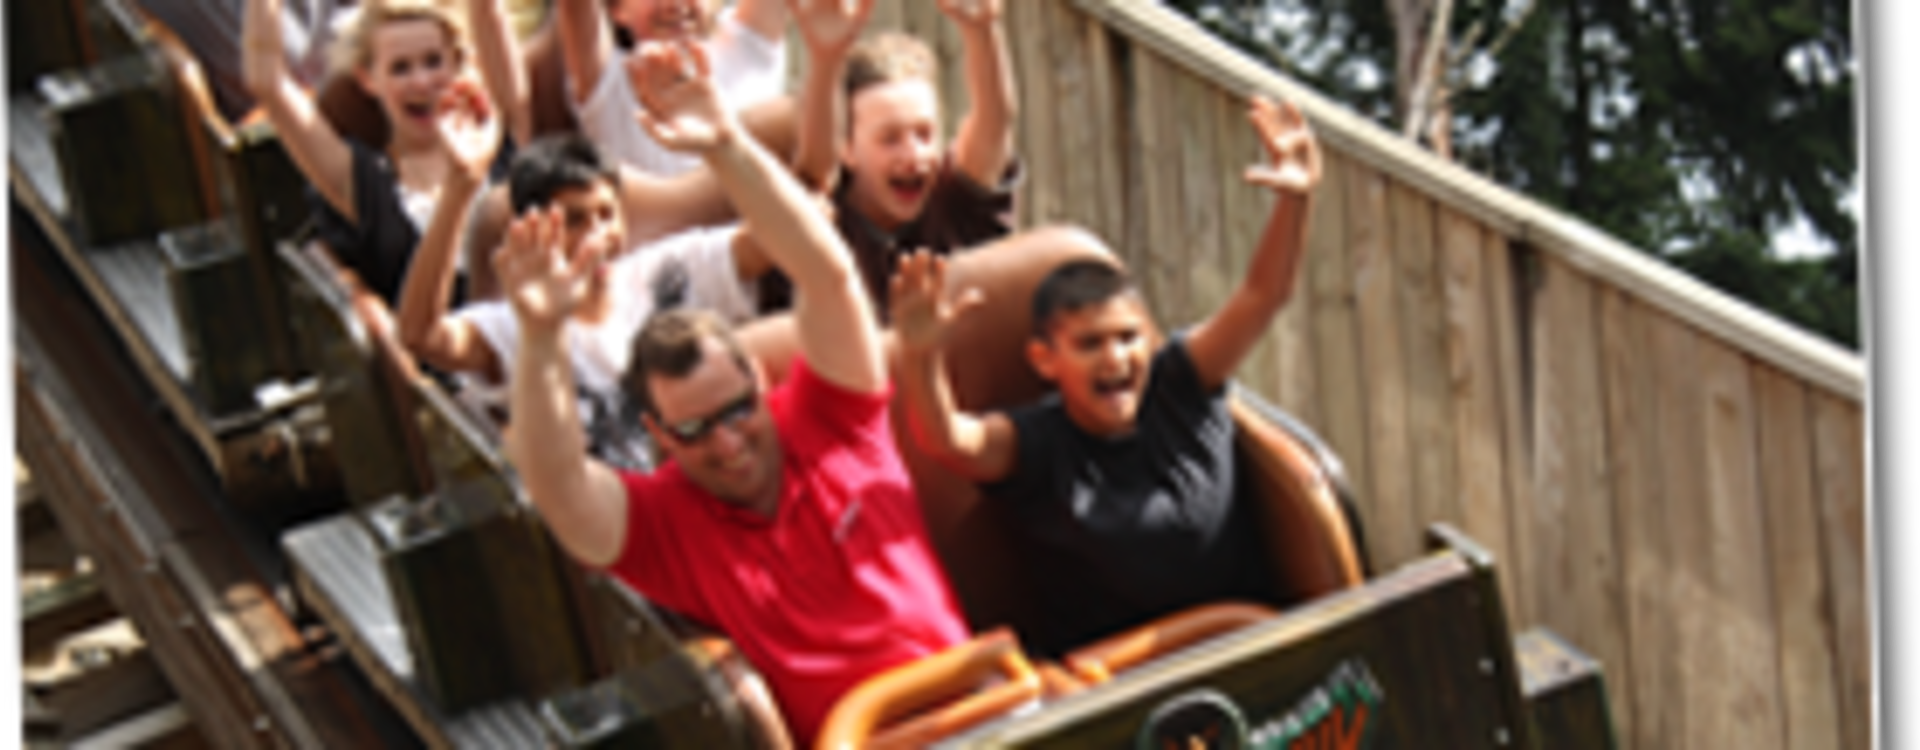 Wild_Waves_Theme_Park-2.png